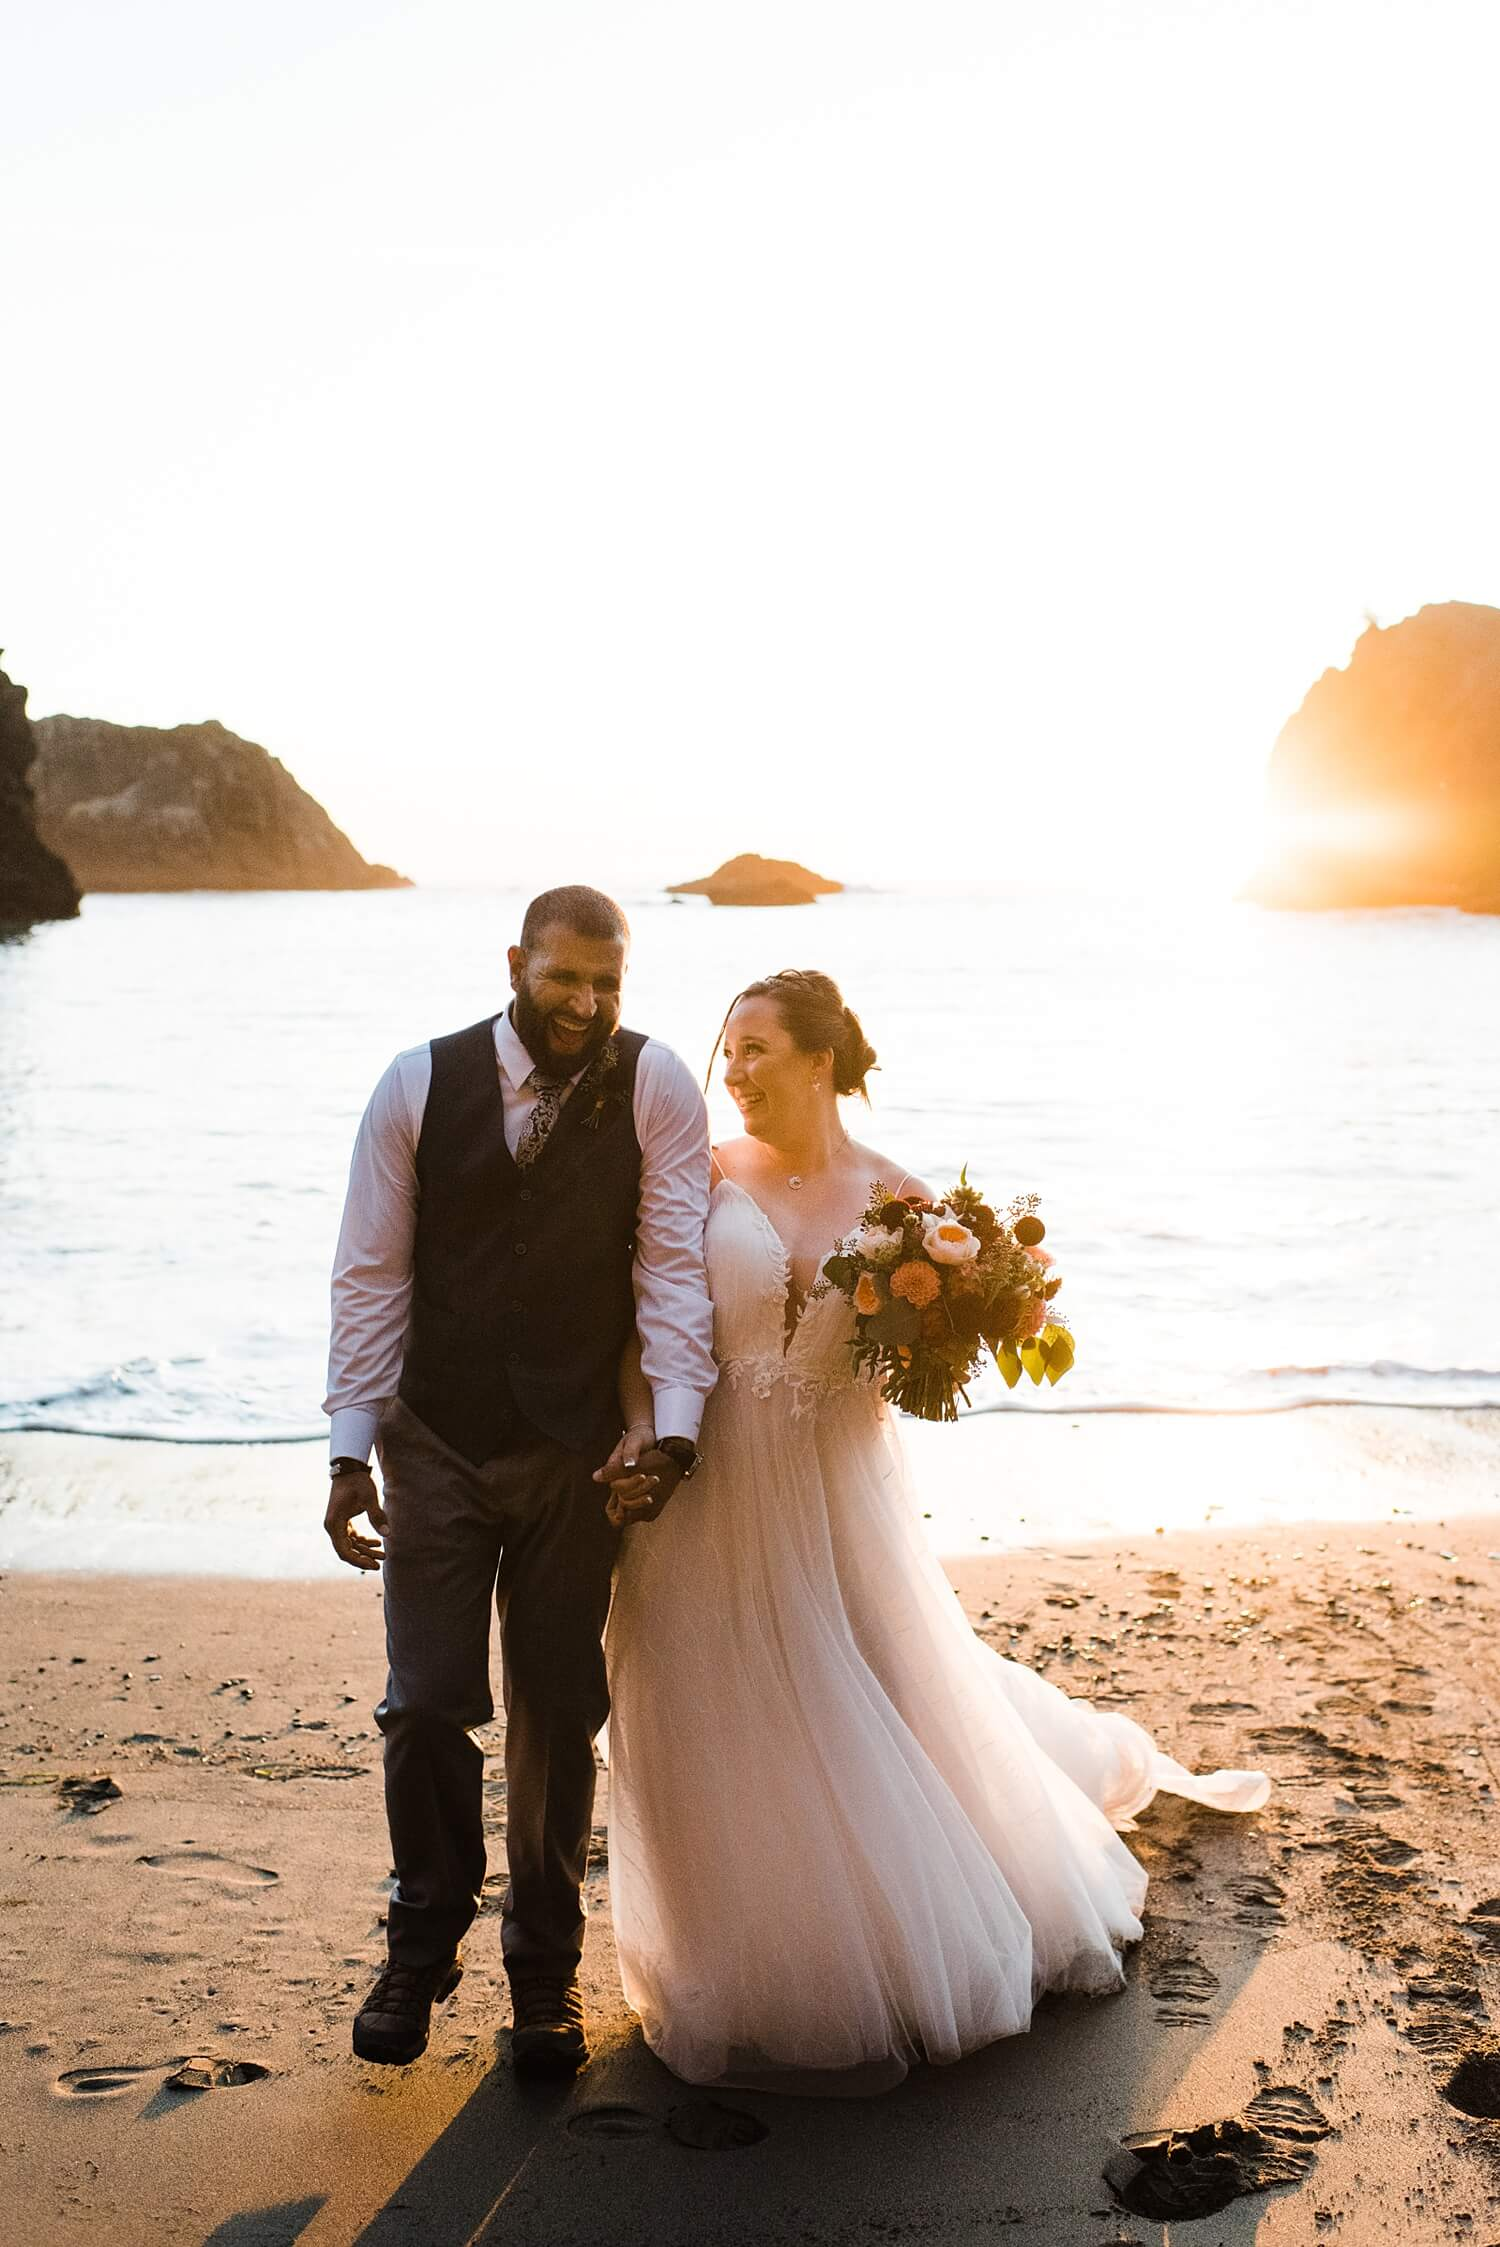 Oregon Coast,adventure elopement photographer,beach elopement,beach wedding,elopement,elopement photographer,intimate wedding,oregon coast elopement,oregon wedding,pacific northwest wedding,sam starns,samuel h boardman oregon coast elopement